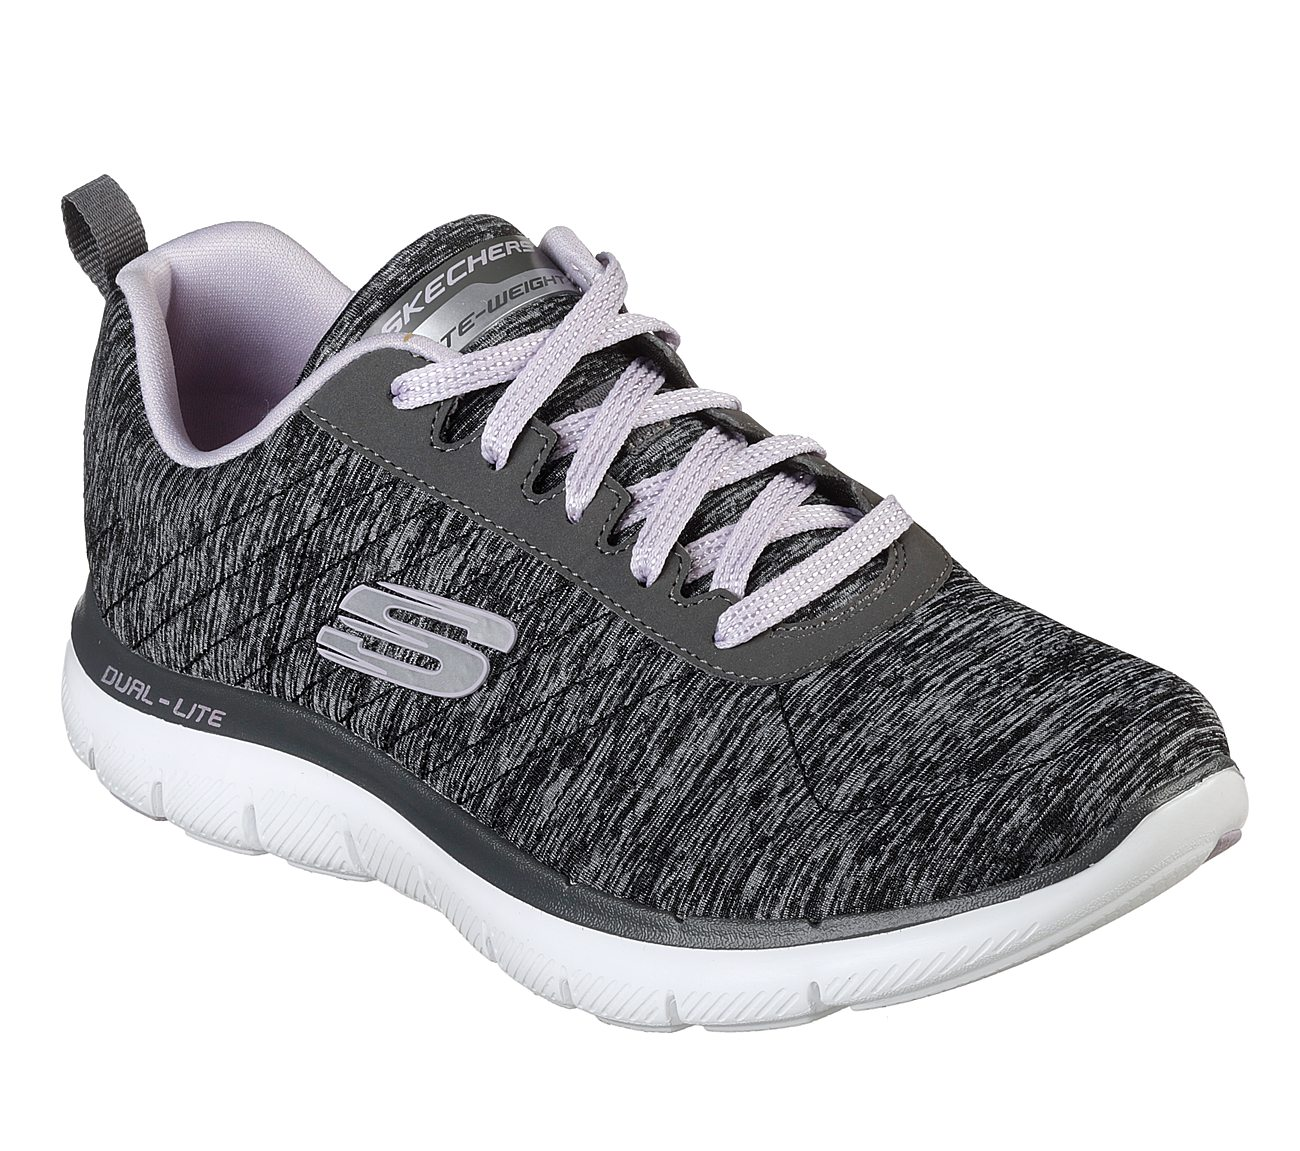 Buy SKECHERS Flex Appeal 2.0 Flex Appeal Shoes only  49.00 2ba445e30